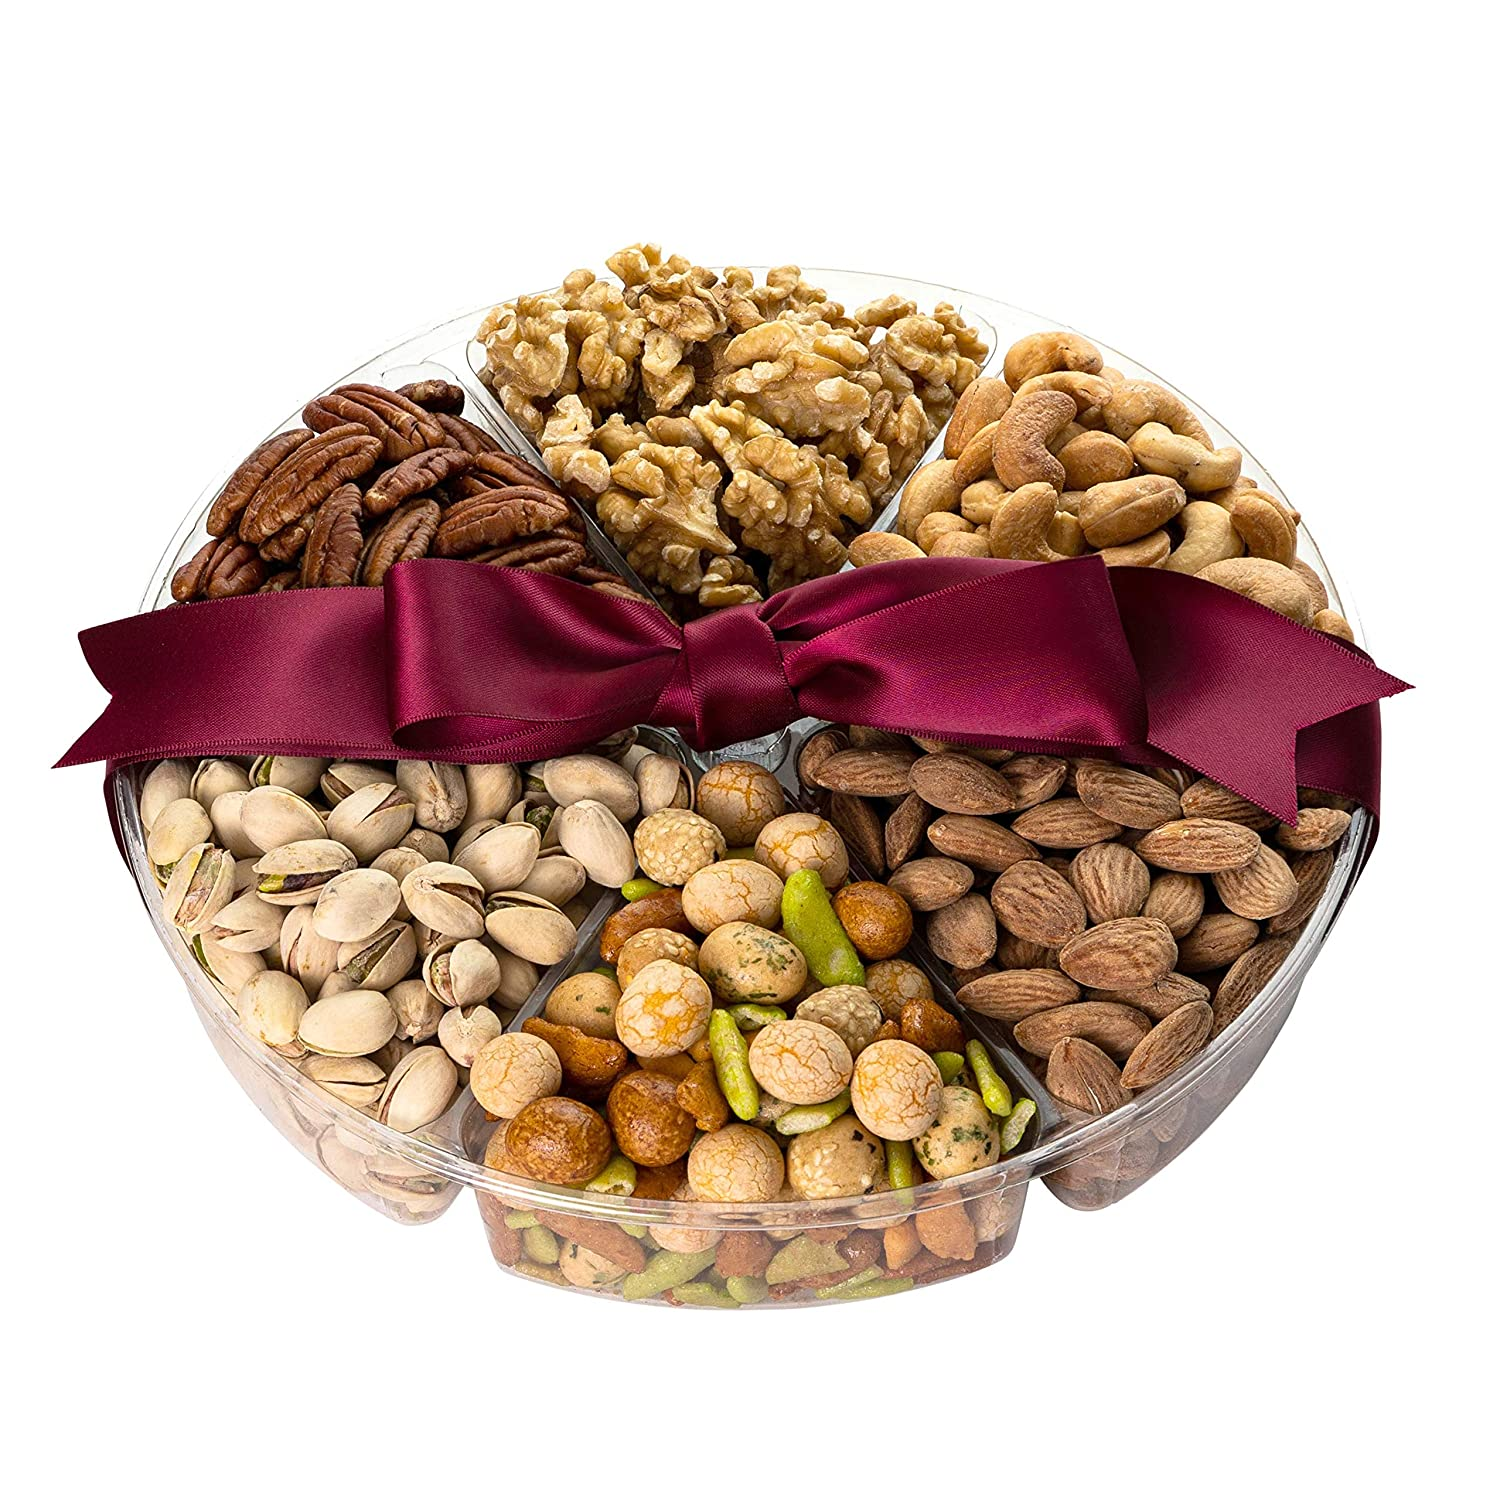 Simple Nuts Holiday Gift Baskets | Assorted Nuts Care Package, Ultra Fresh Nuts, Never Stale | Gourmet Food Snack Gift for Holidays, Christmas, Hanukkah, New Year's & More | Fast, Secure Shipping